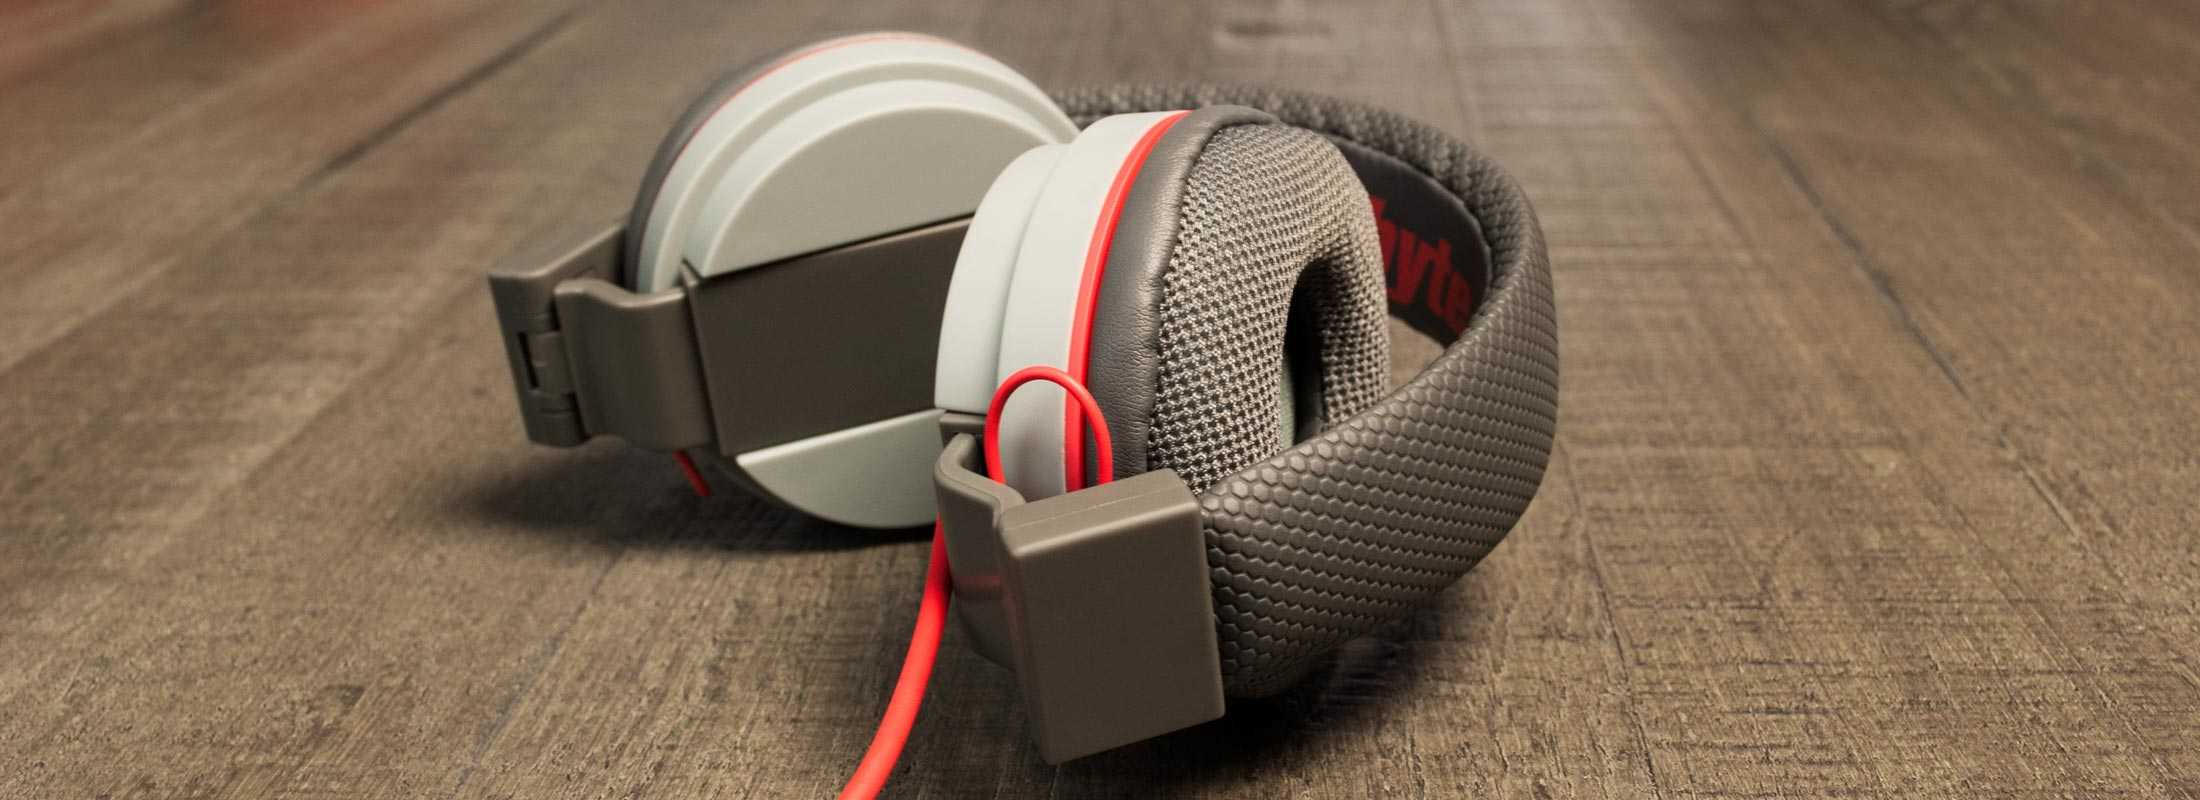 Best Gaming Headset 2019 – The Complete Guide and Headset Reviews